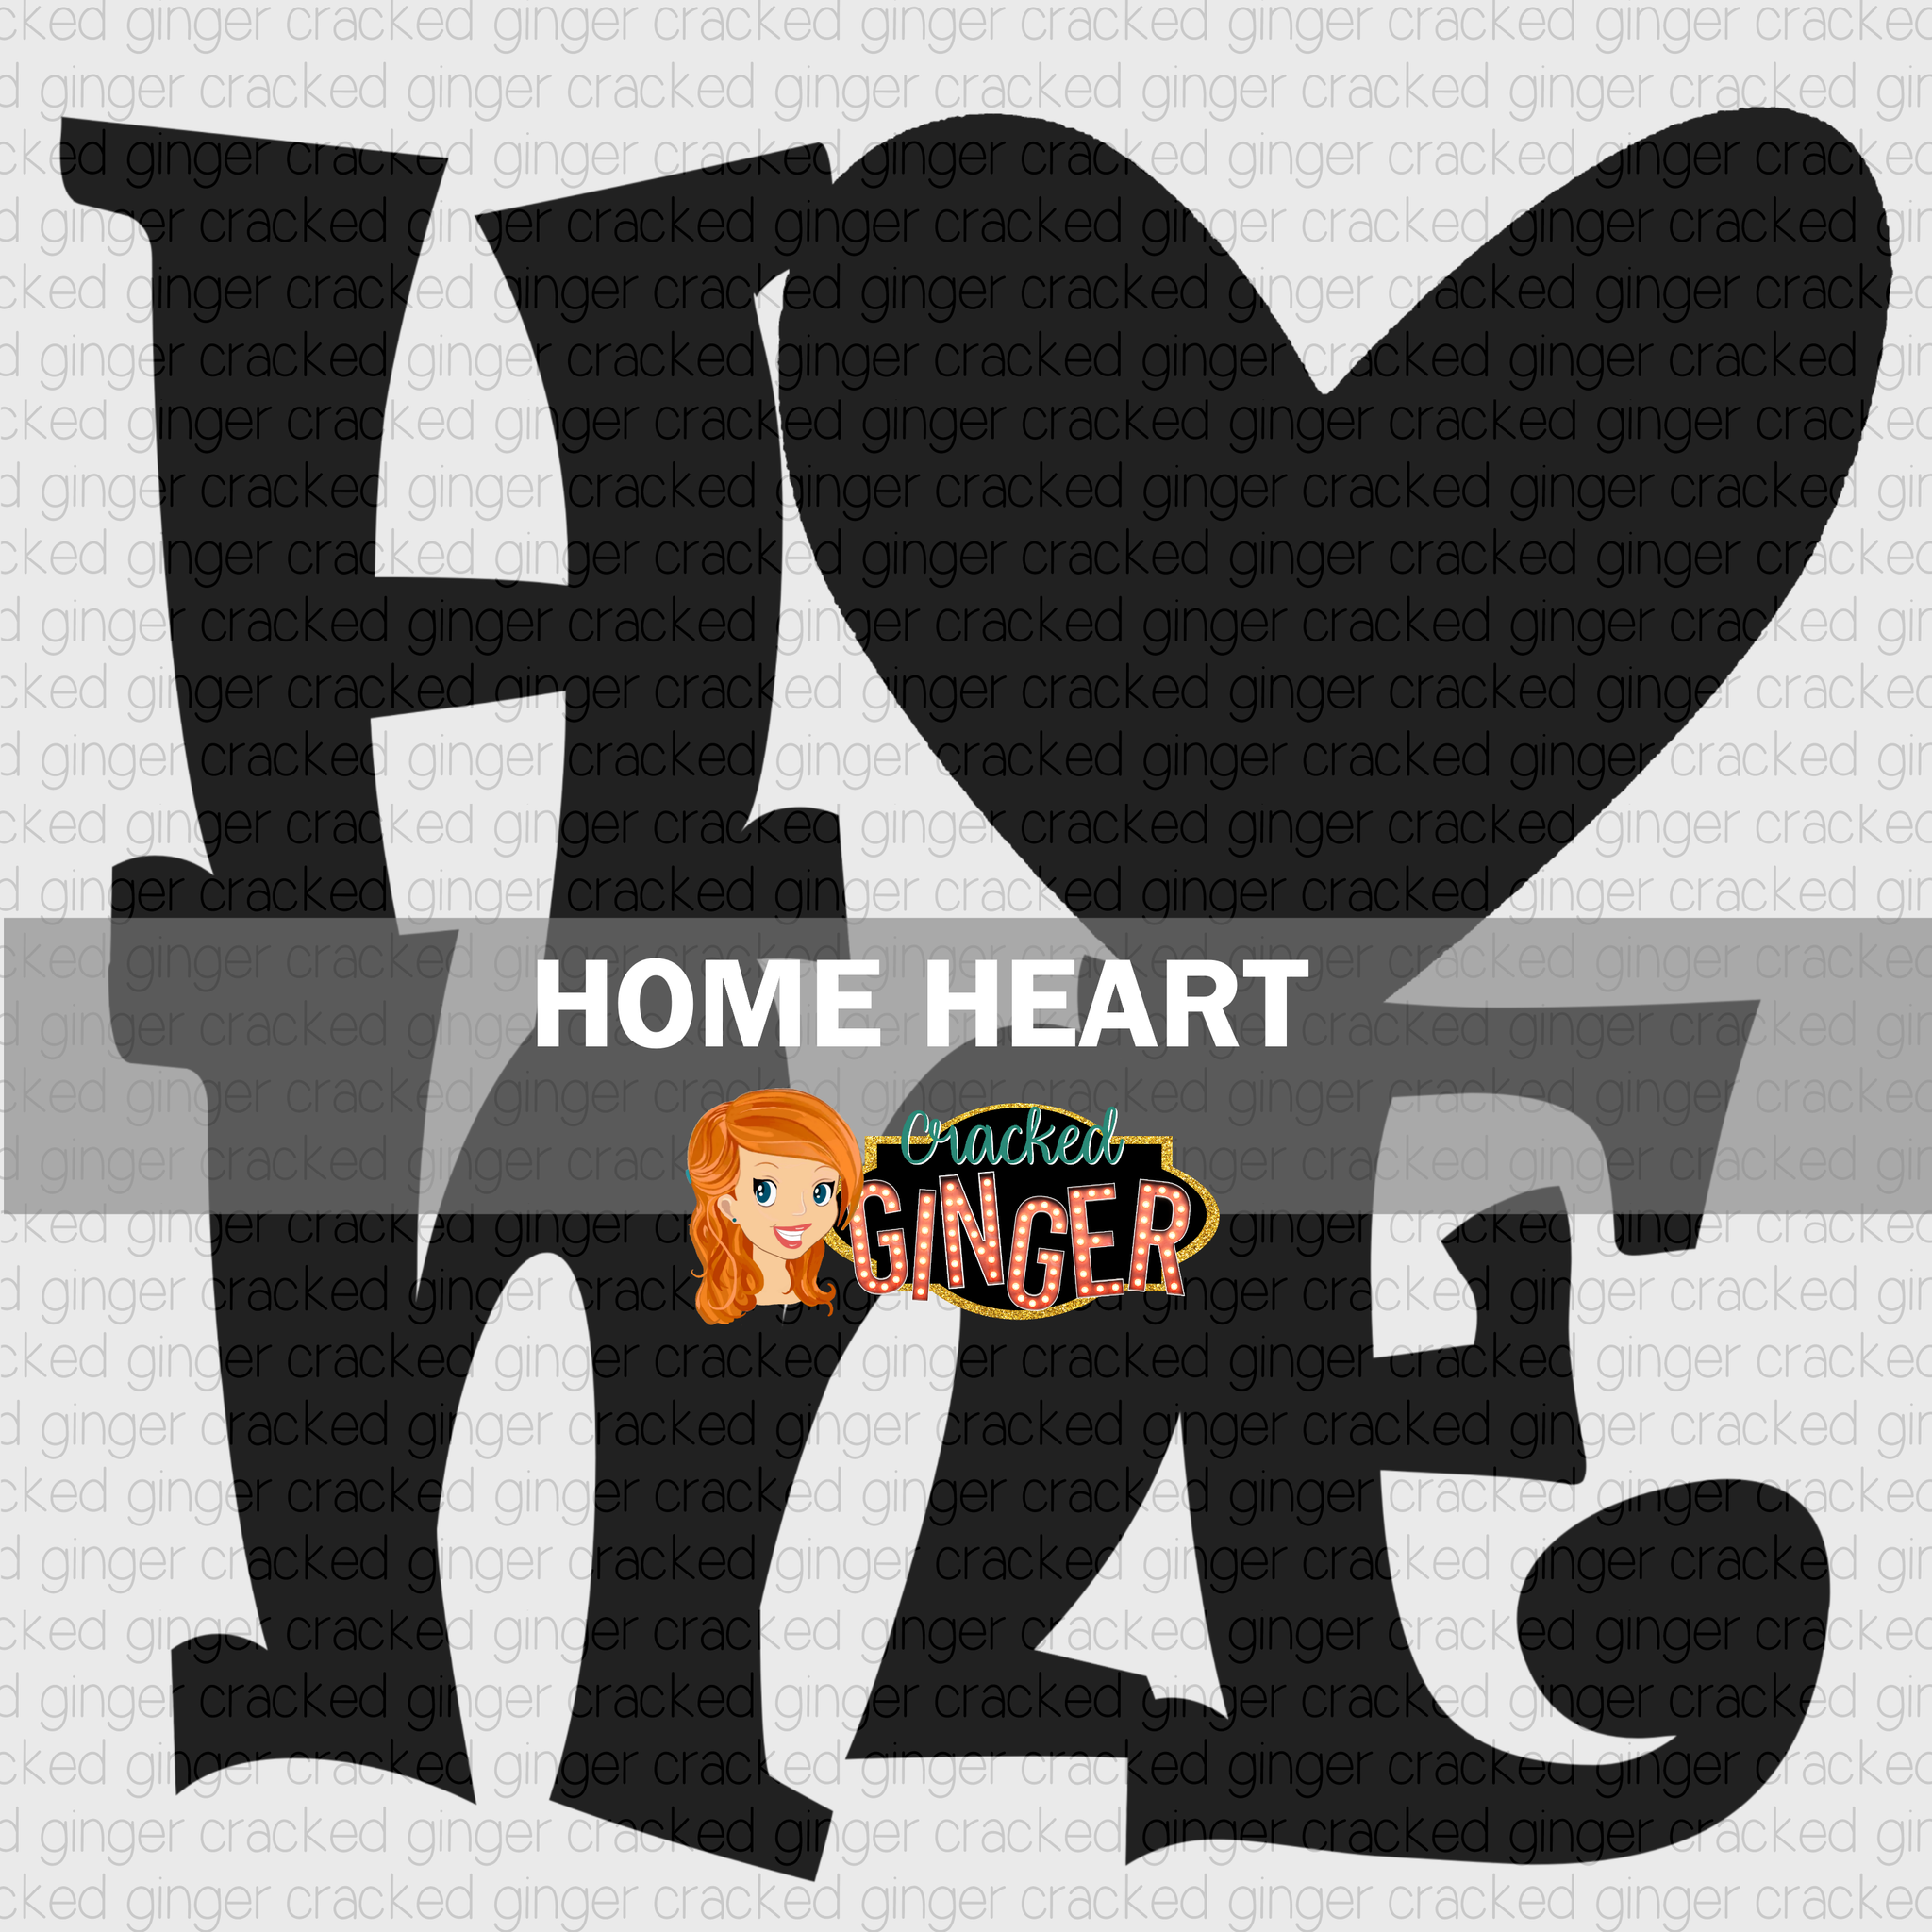 Home with Heart